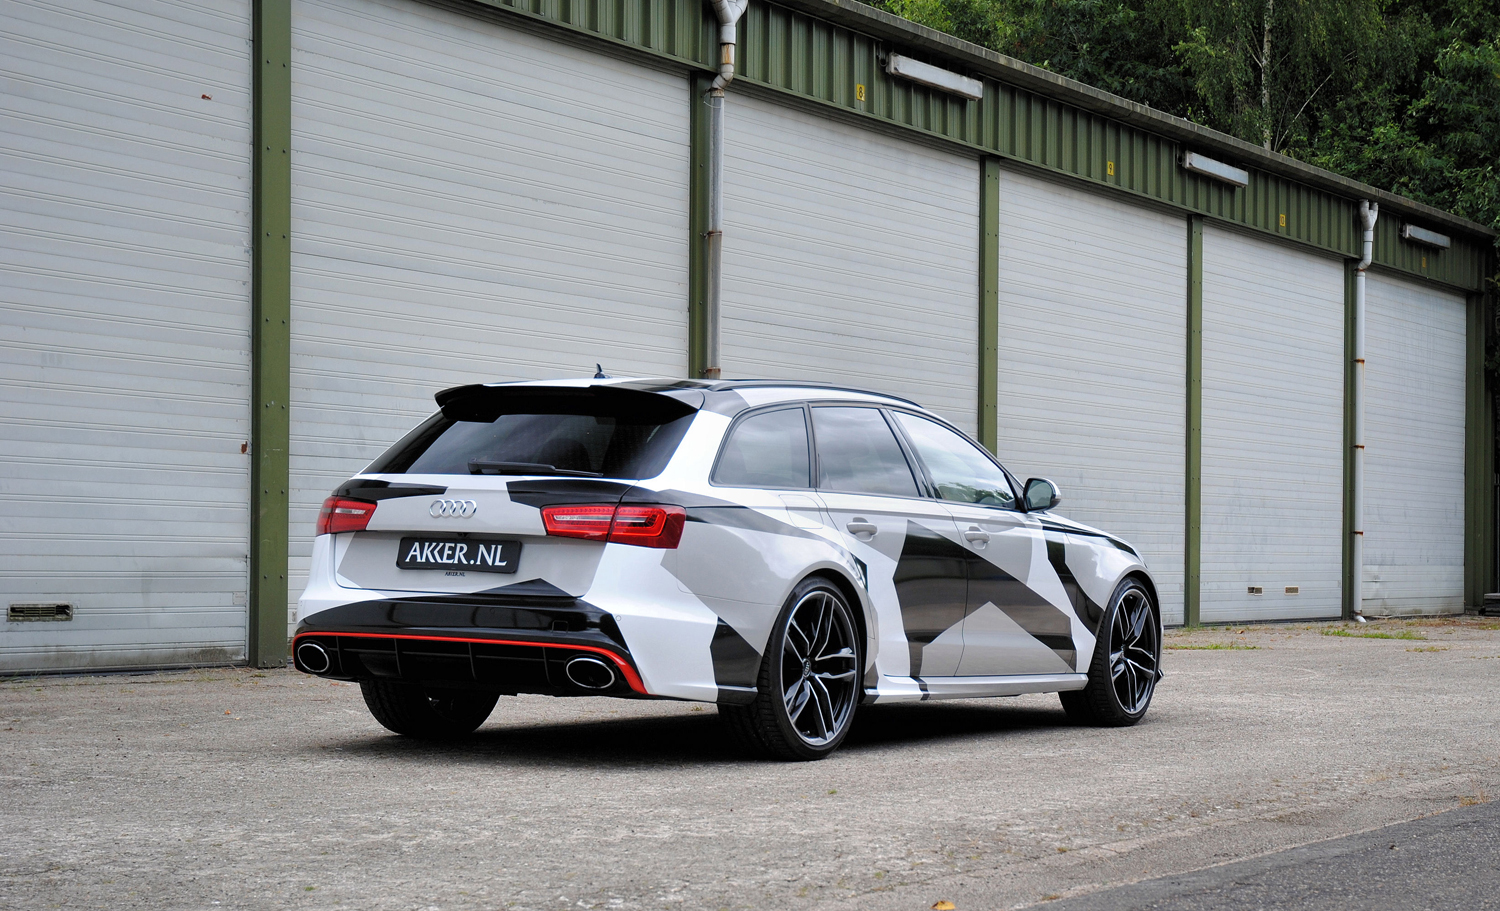 exact copy of jon olsson 39 s rs6 is driving around in the netherlands. Black Bedroom Furniture Sets. Home Design Ideas